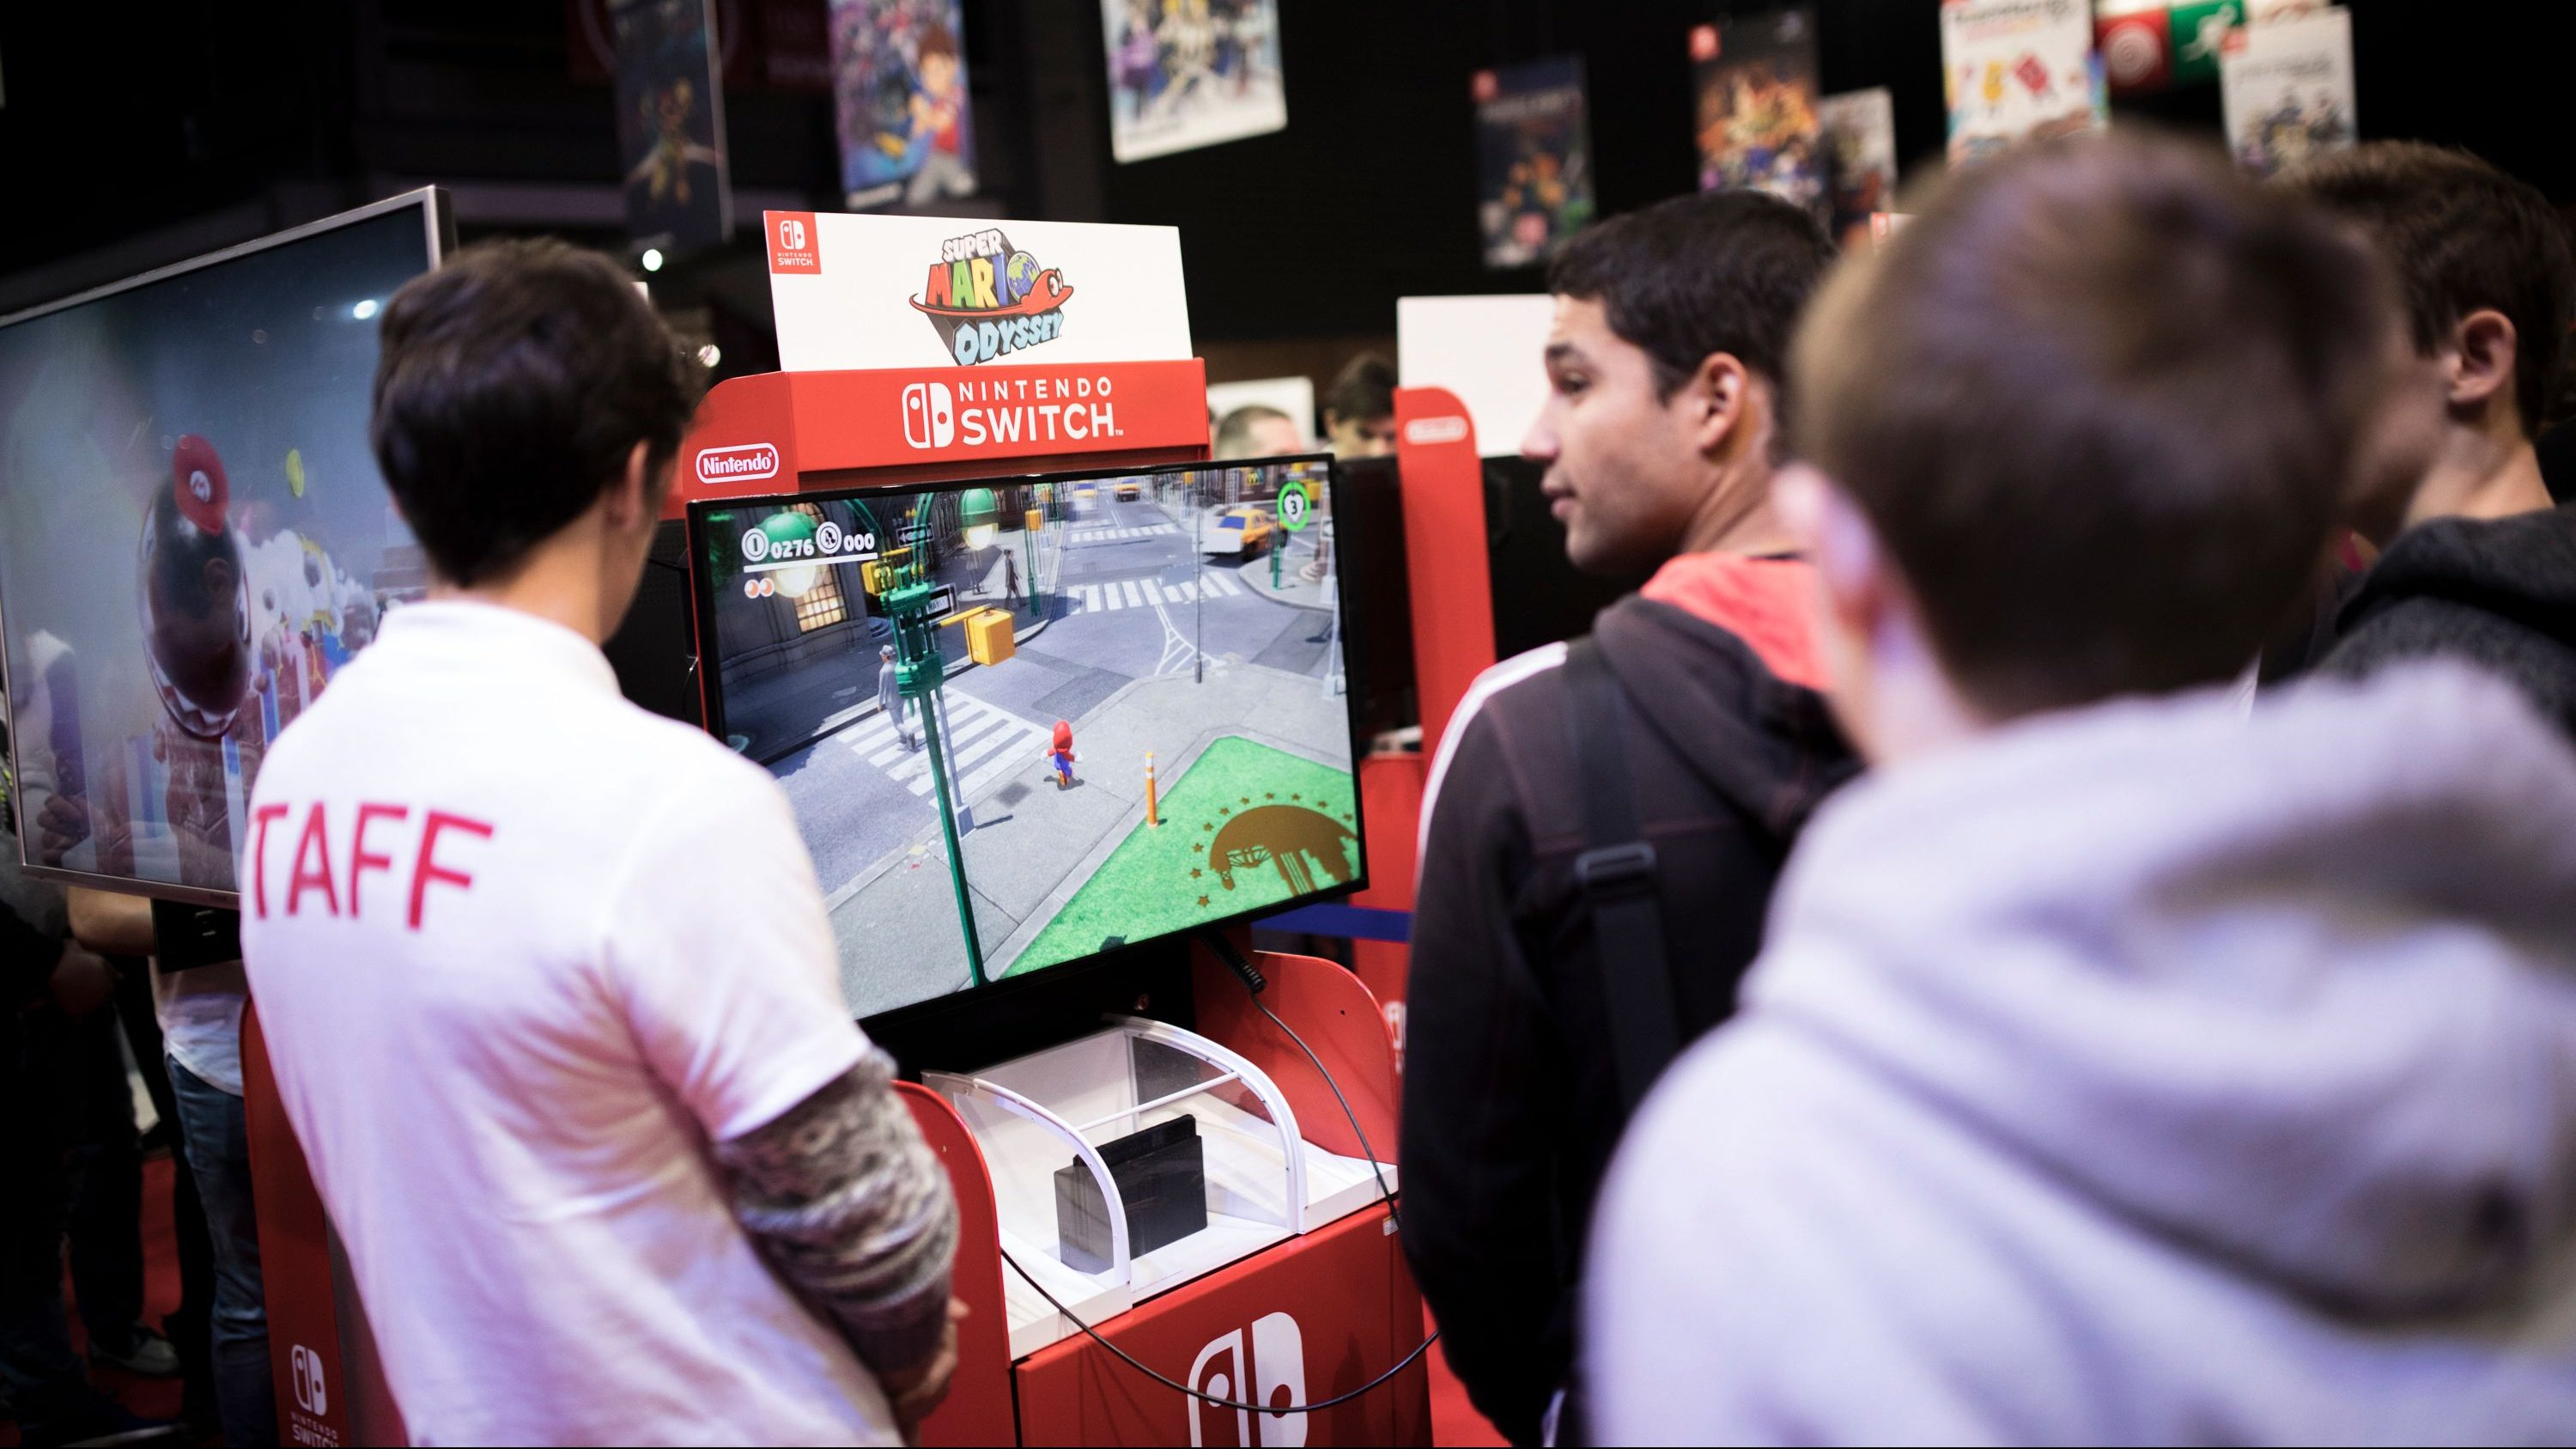 """Visitors play Mario Odyssey video game at the Nintendo stand at the Paris Games Week in Paris, Friday, Nov. 3, 2017. The Paris Games Week, or more commonly called """"PGW"""" is the French show dedicated to video games and its derivatives.(AP Photo/Kamil Zihnioglu)"""